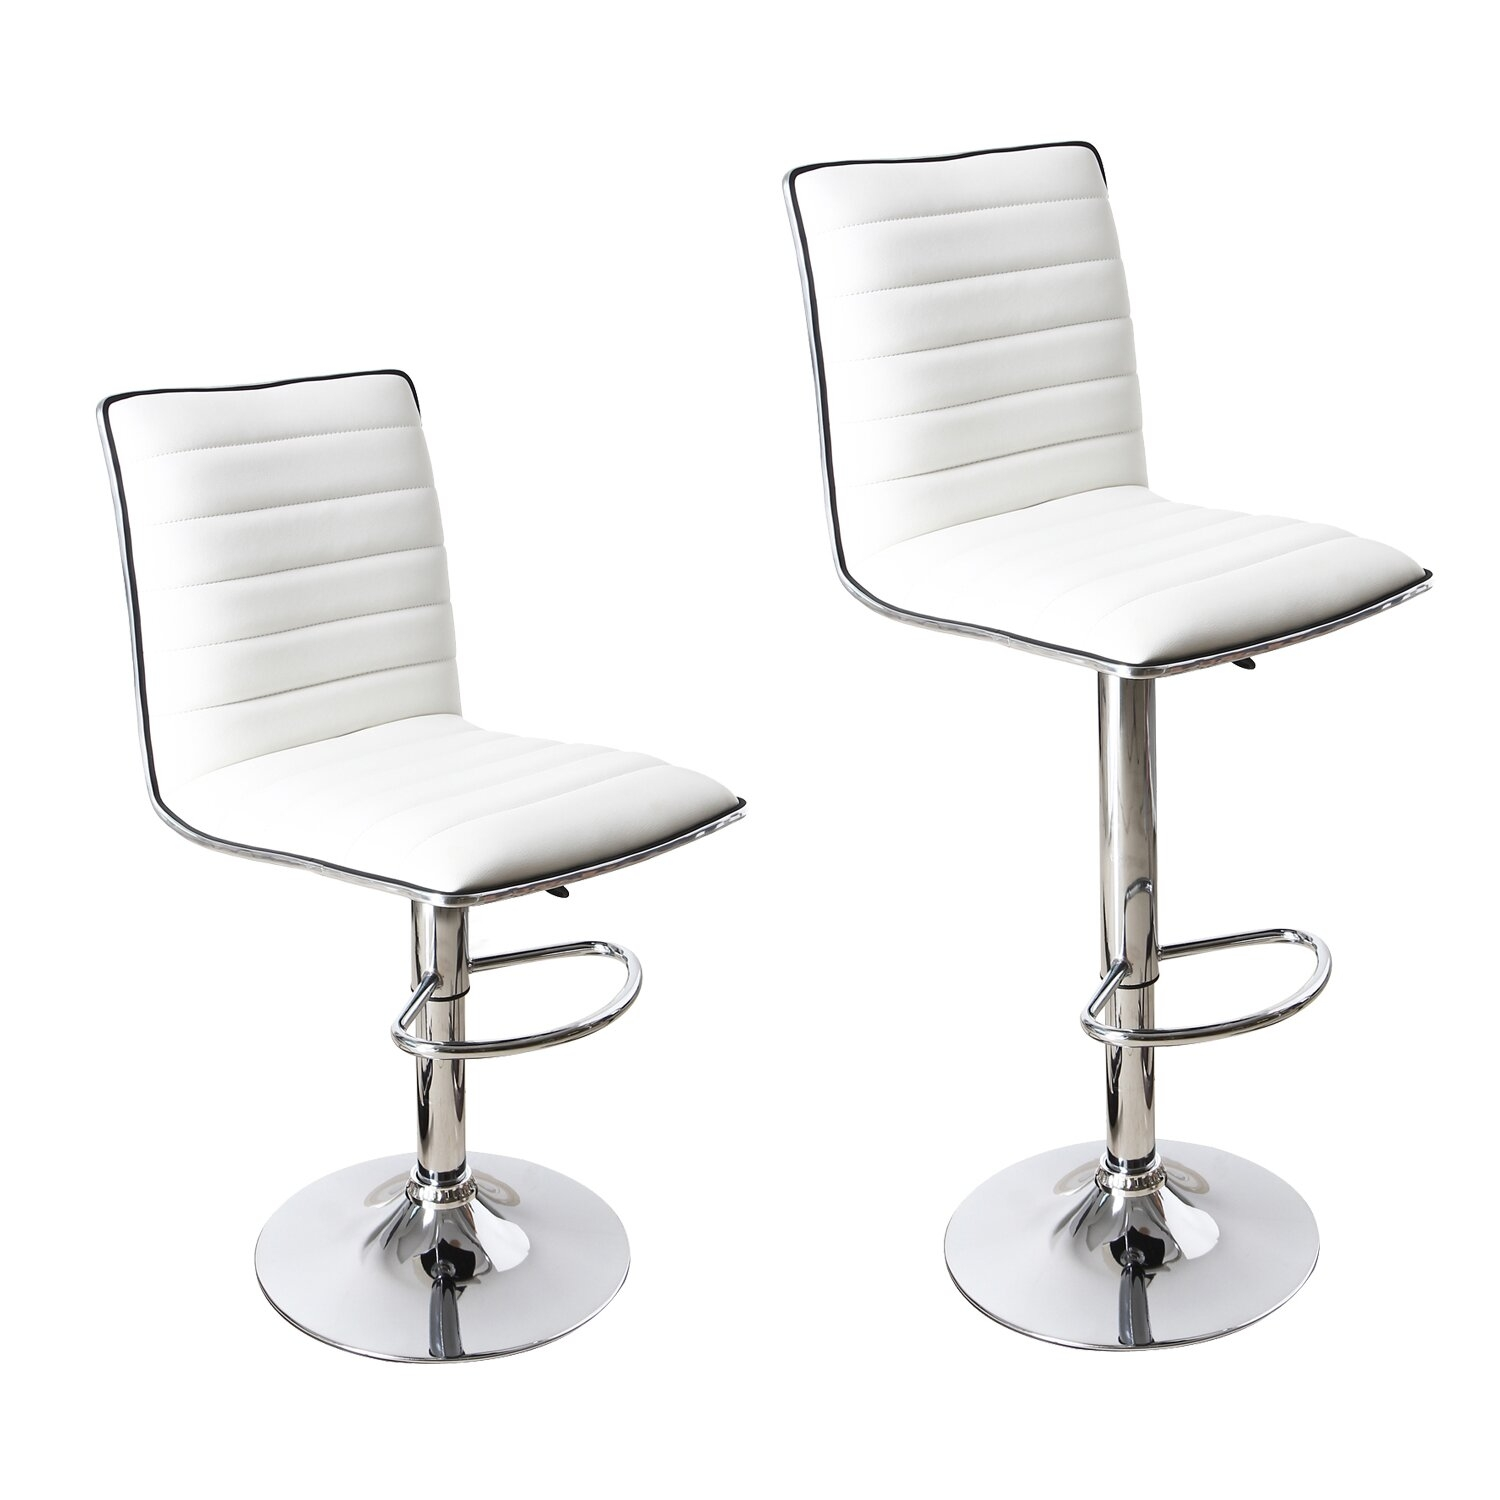 Adeco [CH0029] White Barstool Faux Leather Upholstery (Set of 2) Chairs, Home Decor